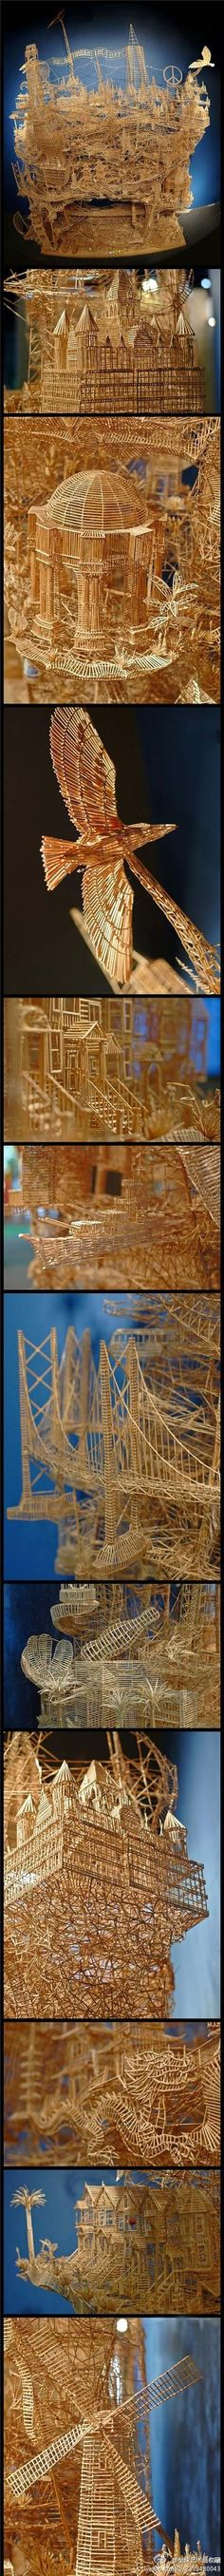 Toothpick Sculpture::Intricate and Unbelievably detailed!